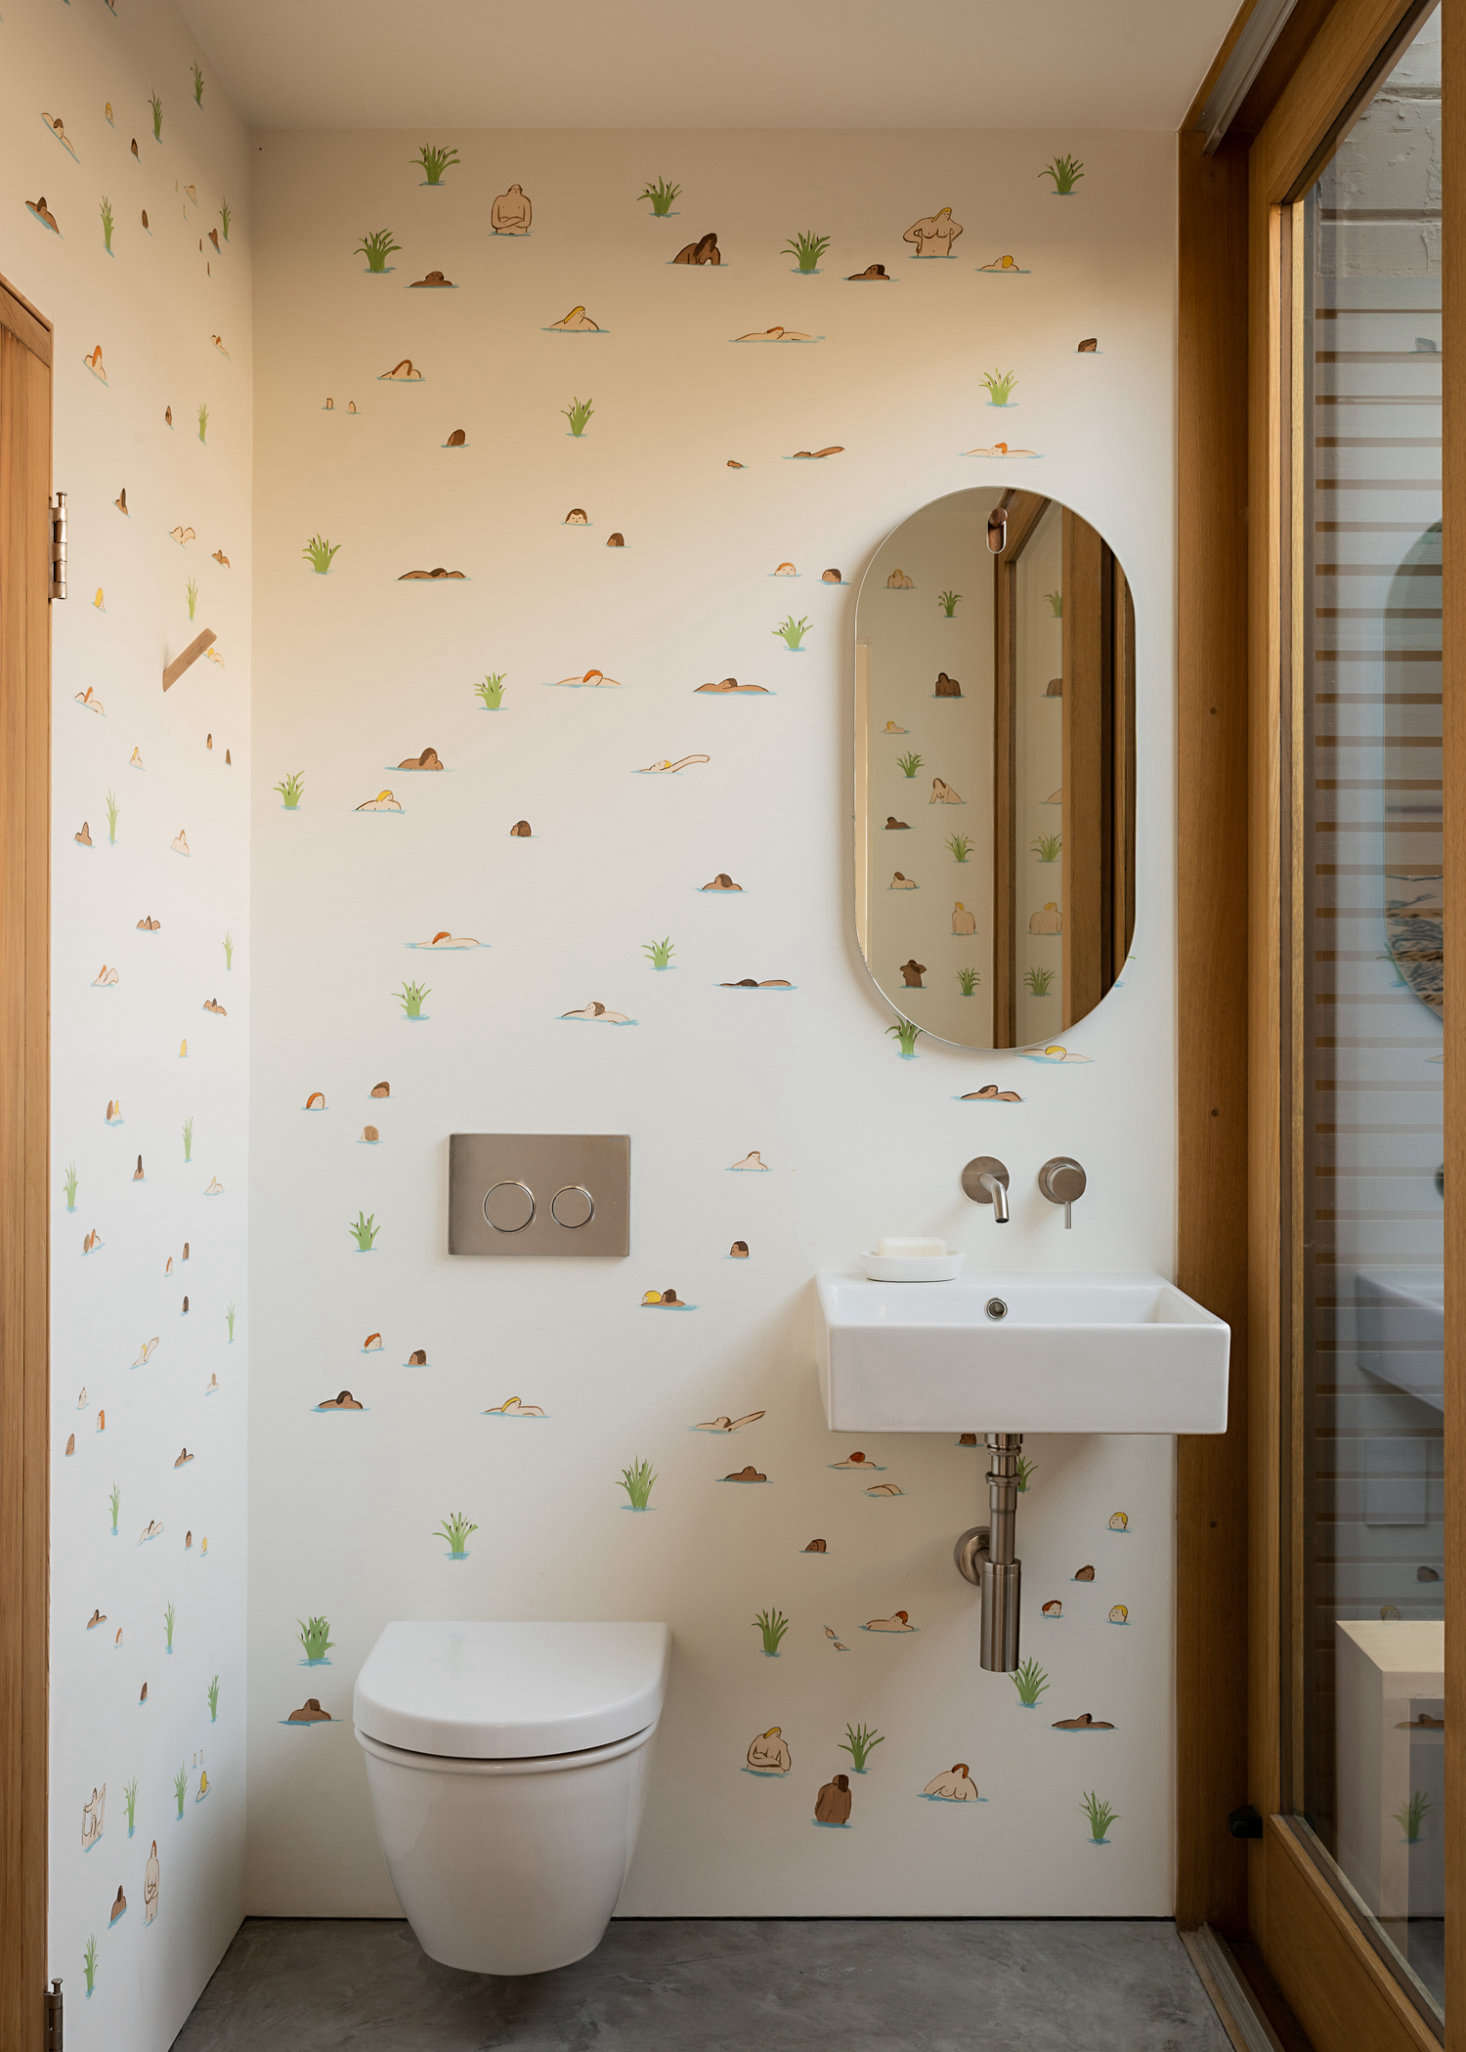 An onsen-inspired bathroom features a hand-painted mural of bathers by local painter Rob Moss Wilson. Sliding doors open into an outdoor bathtub and shower.